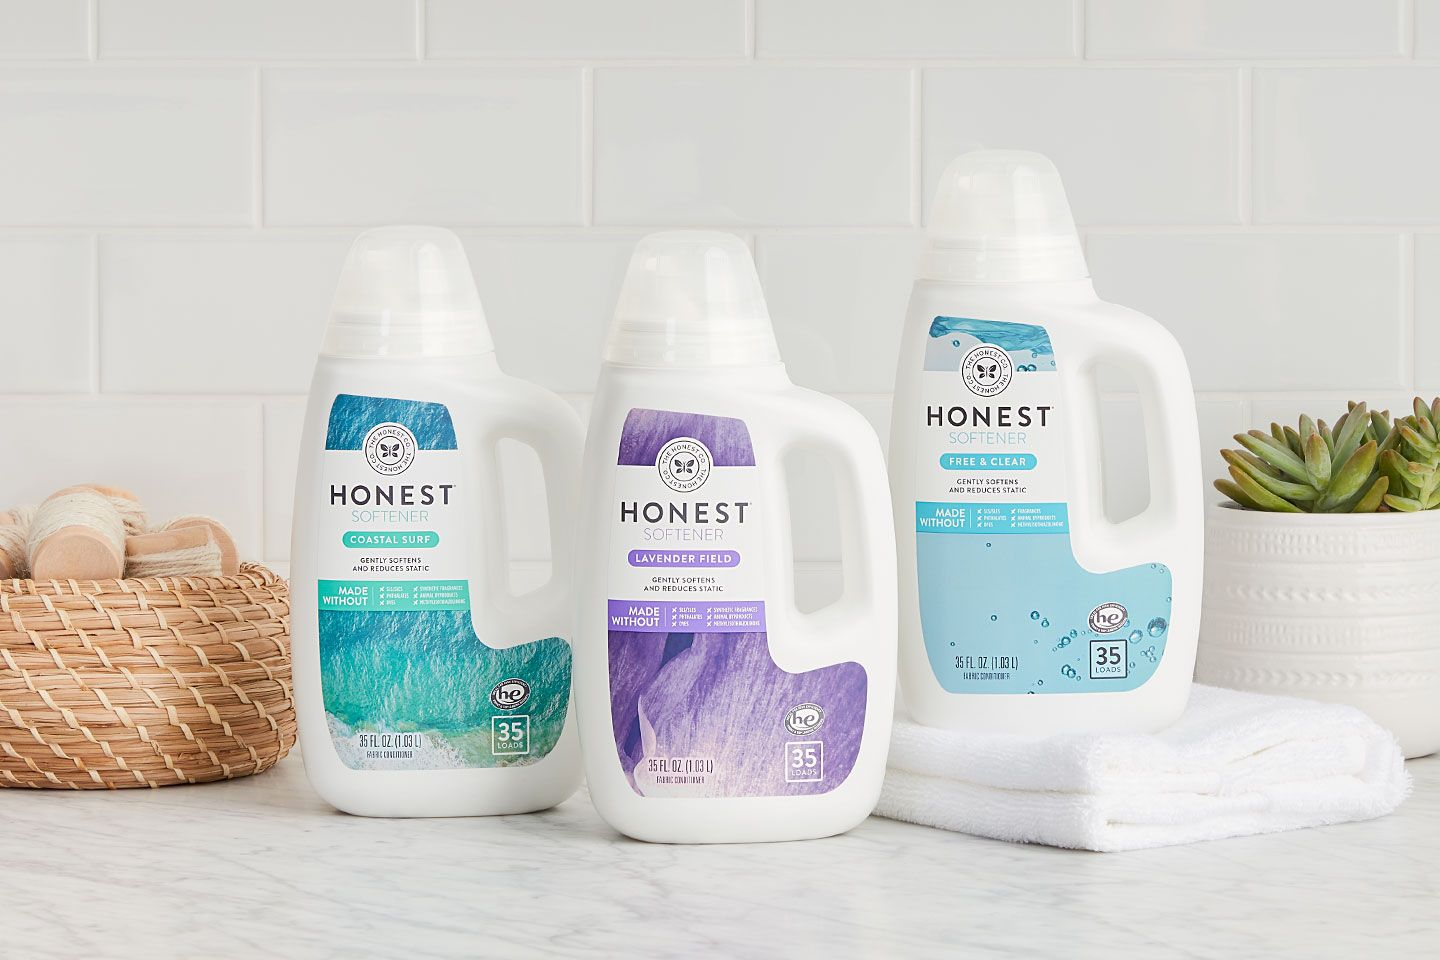 Shop Honest Co For Our Gentle Fabric Softener Specifically Designed For Sensitive Laundry Detergent Honest Laundry Detergent Hypoallergenic Laundry Detergent